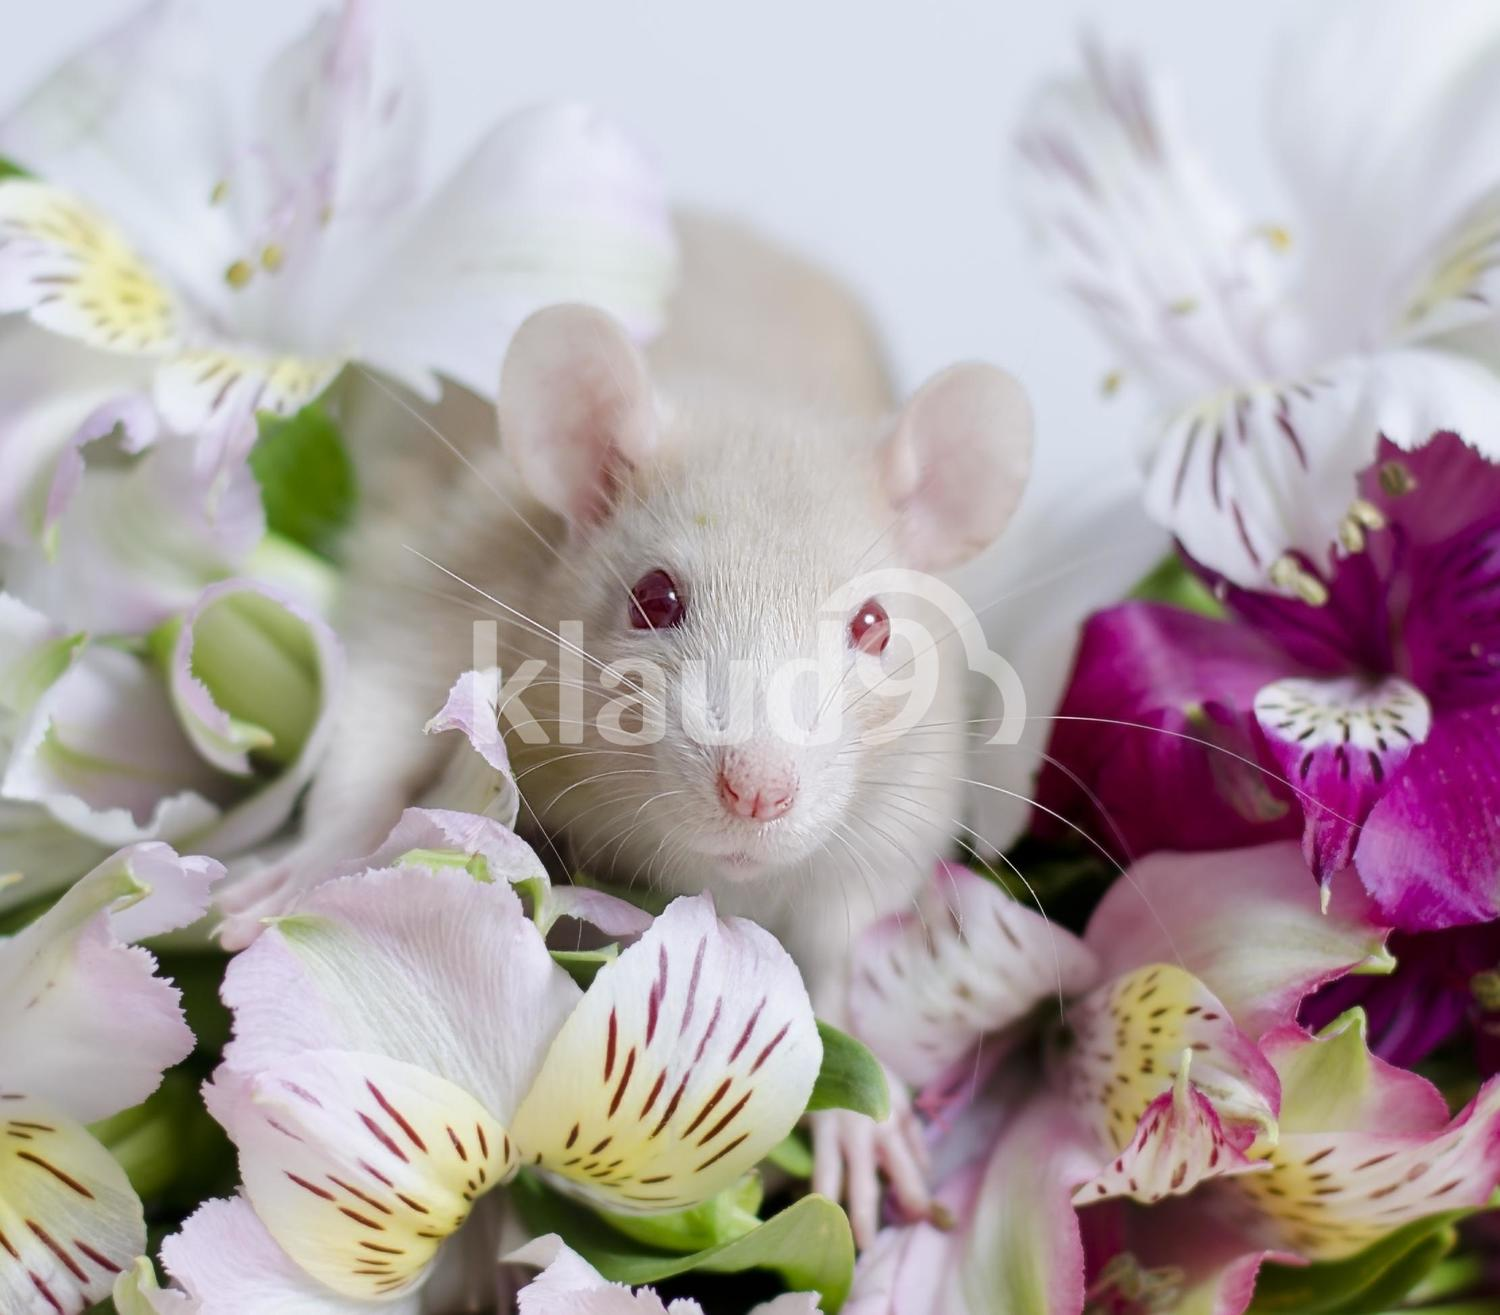 Rat in flowers.